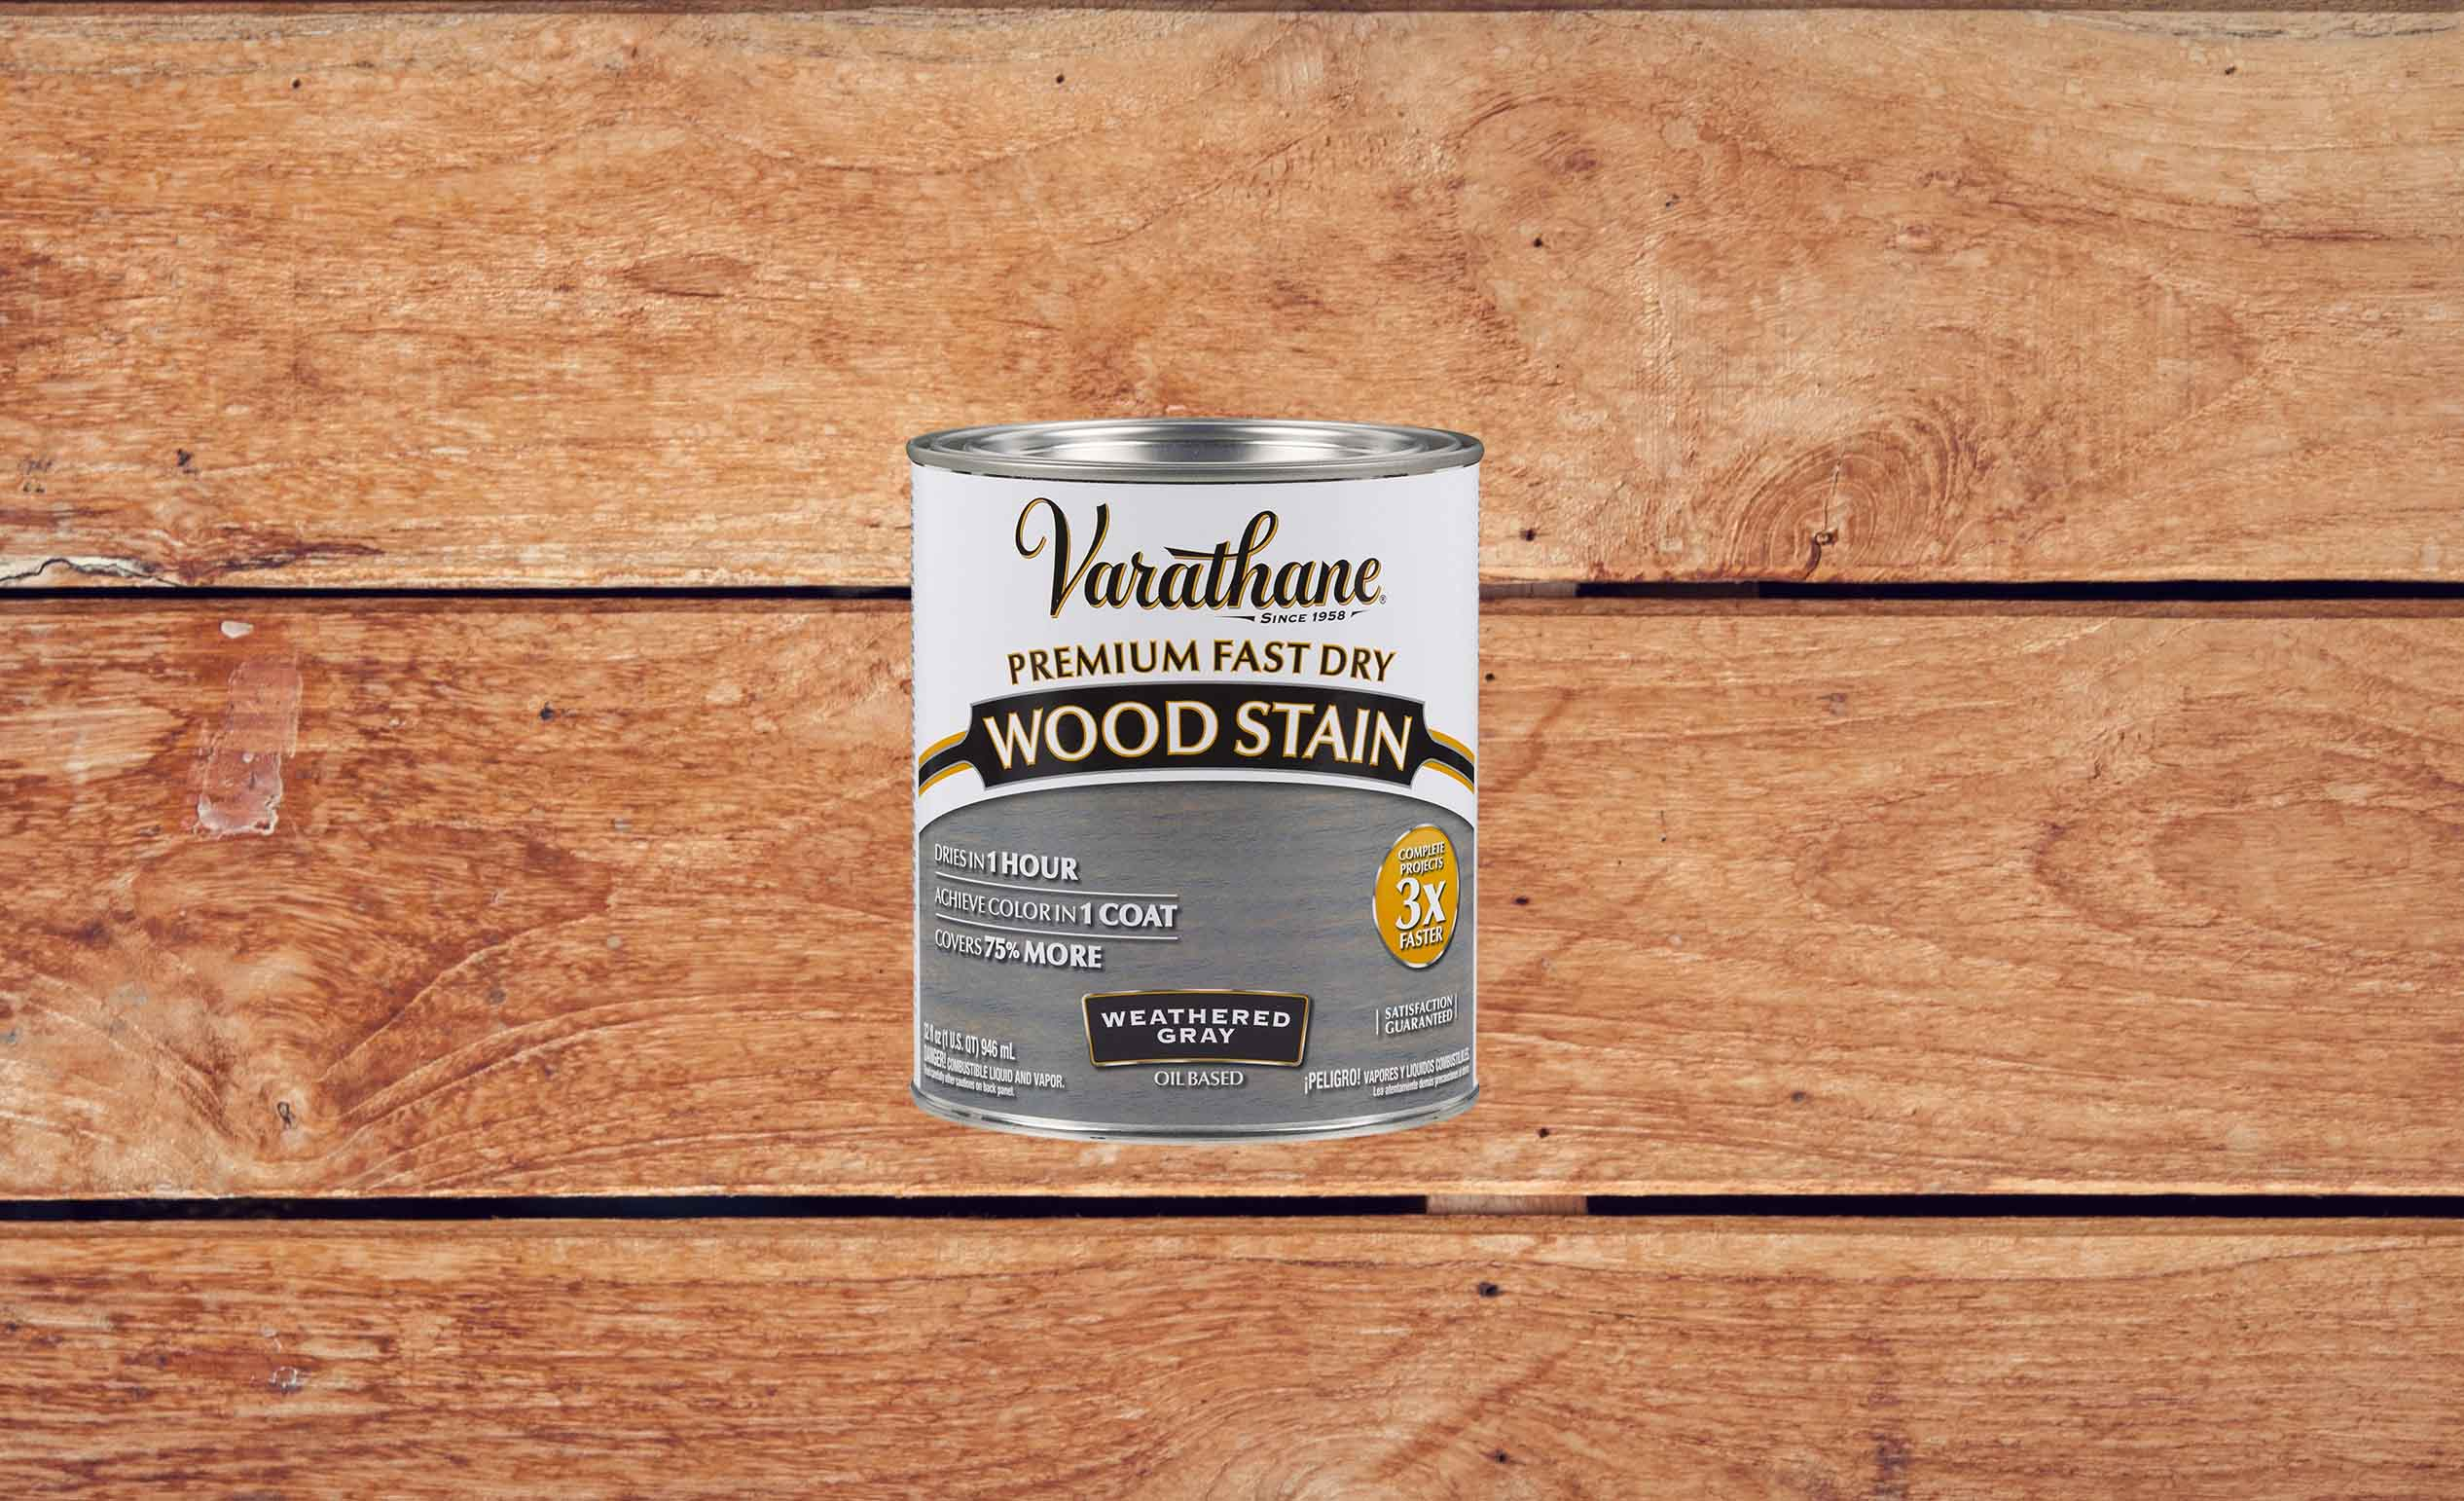 Varathane Fast Dry Wood Stain Reviews